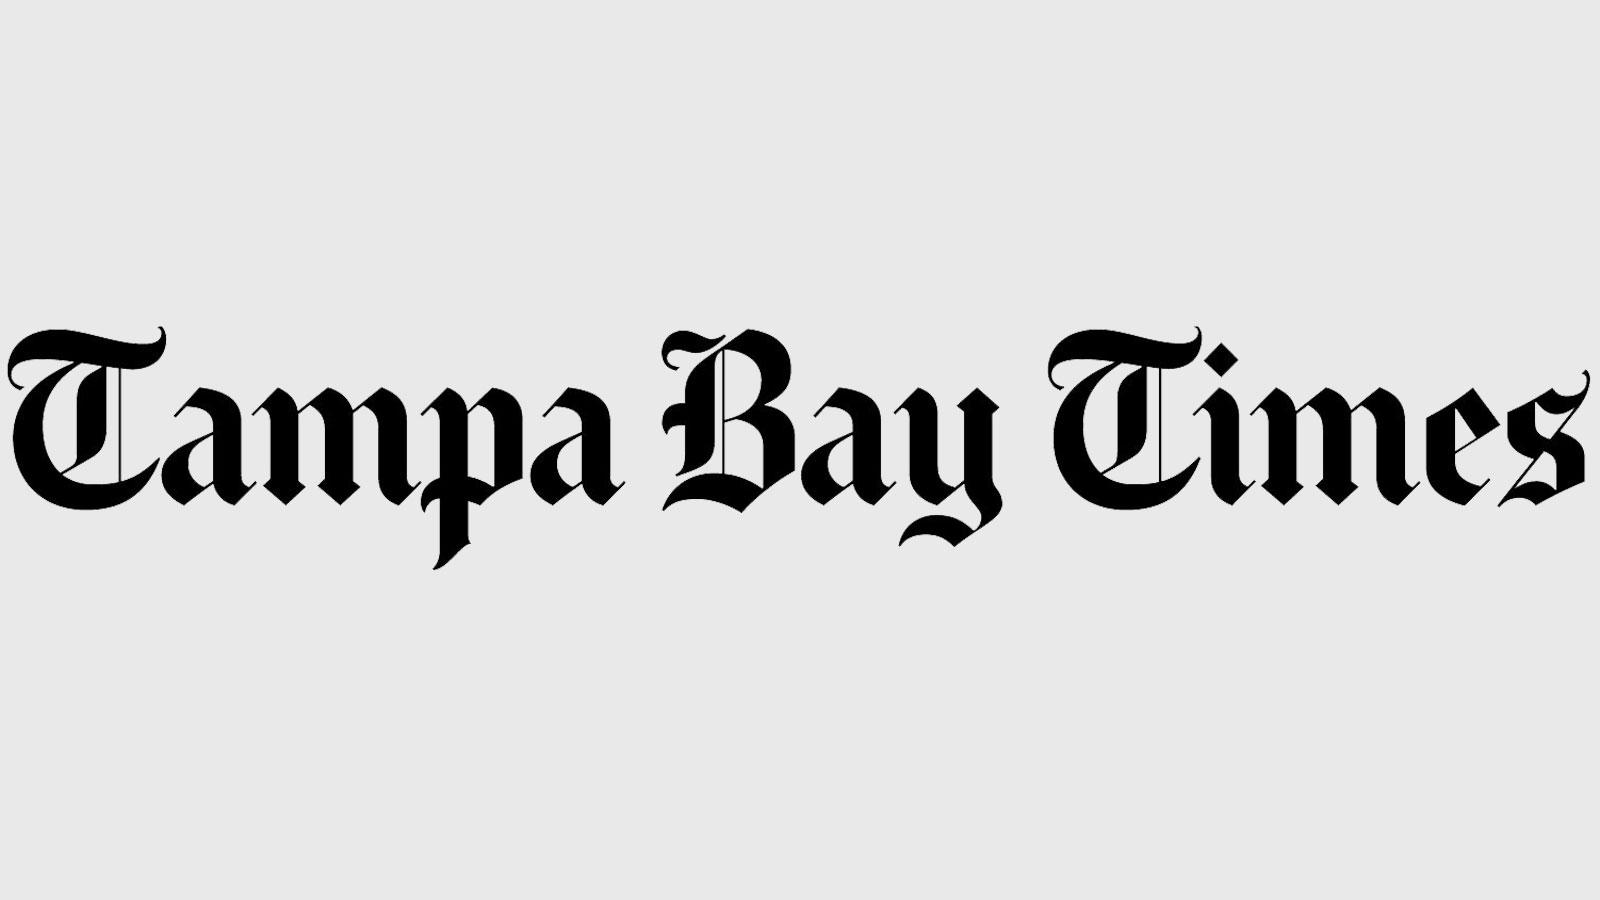 Tampa Bay Times Endorses Handmade Cigar Exemption